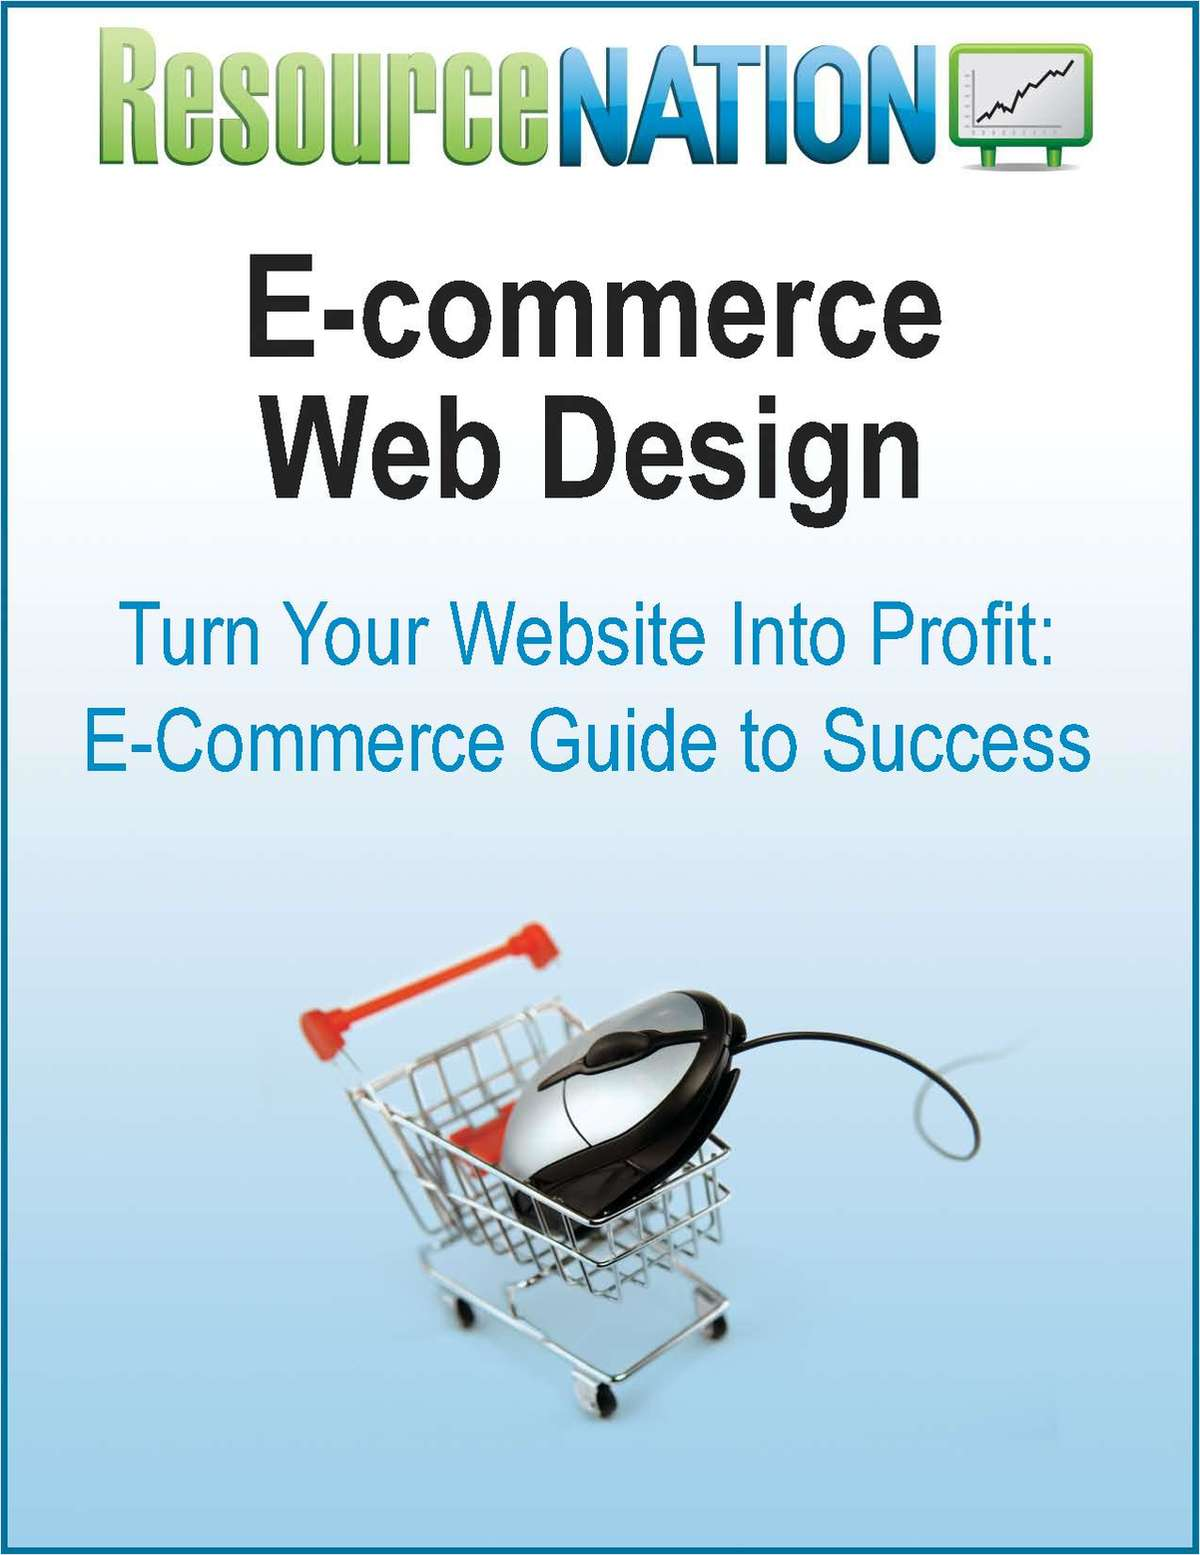 E-commerce Marketing: How To Turn Your Website Into Profit